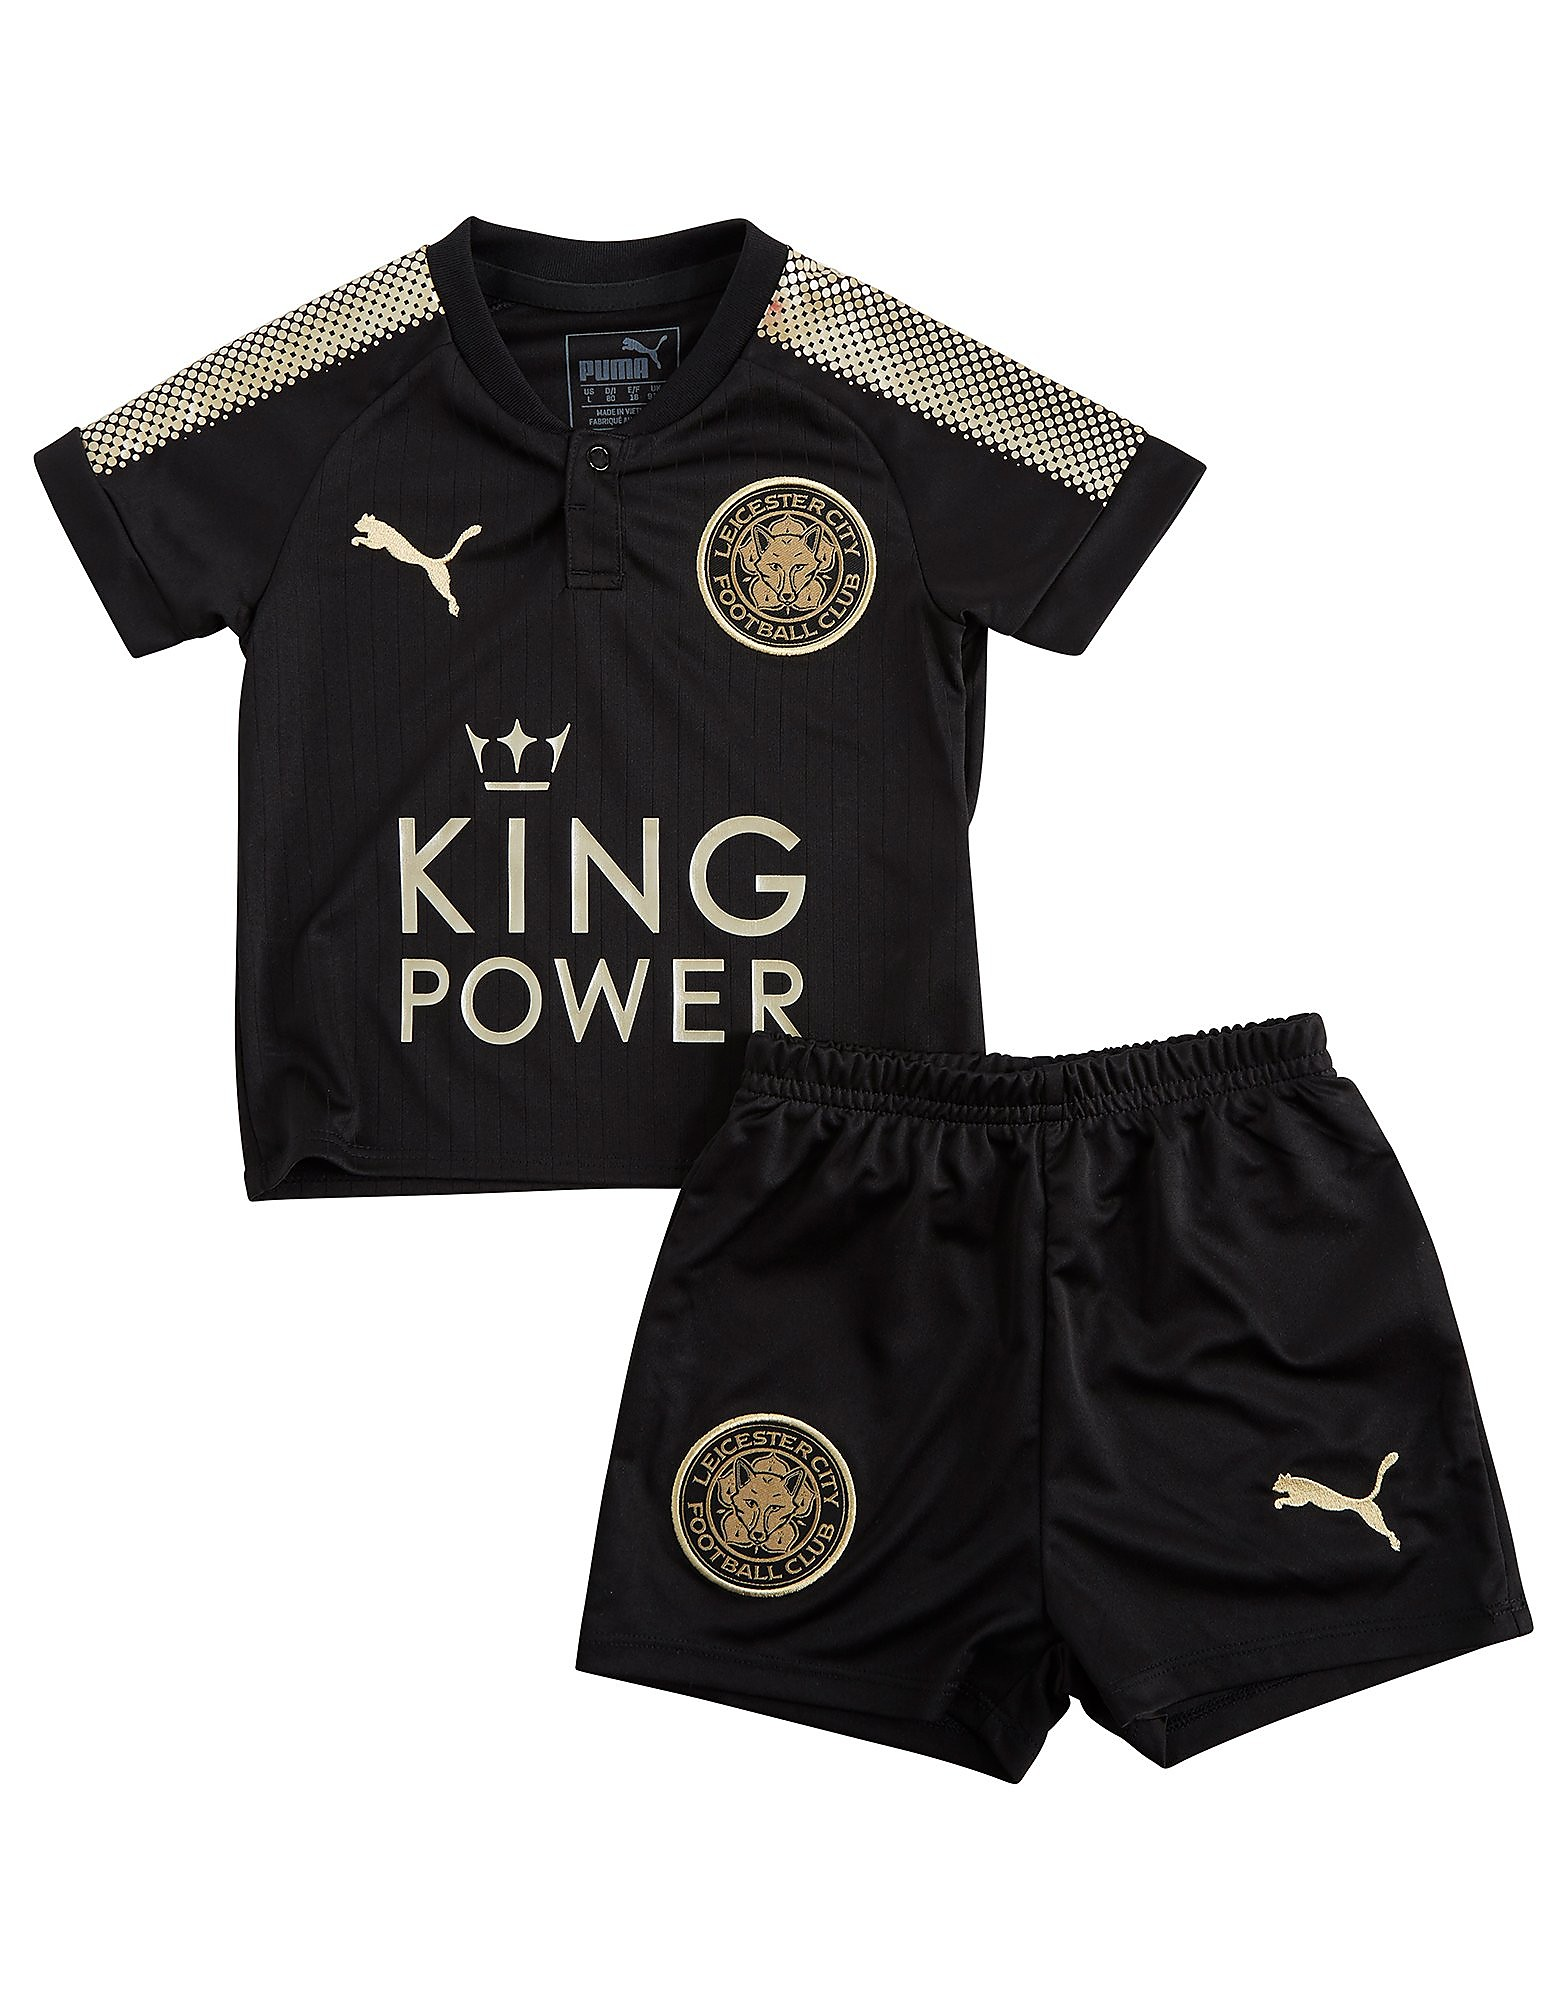 PUMA Leicester City FC 2017/18 Away Kit Infant